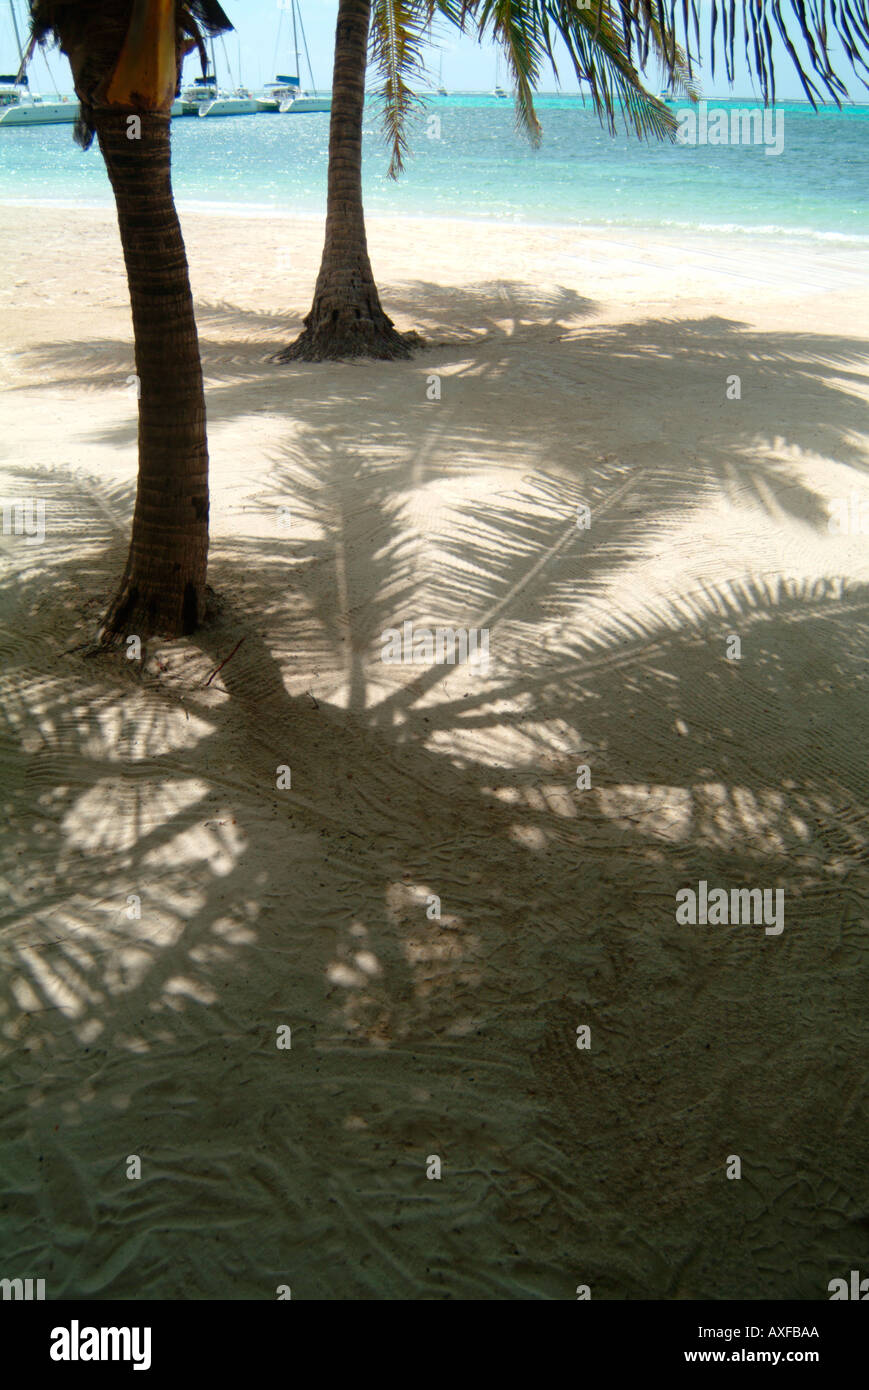 Palm trees on a sandy tropical beach with turquoise waters. Teh high sun is casting shadows of the trees fronds Stock Photo